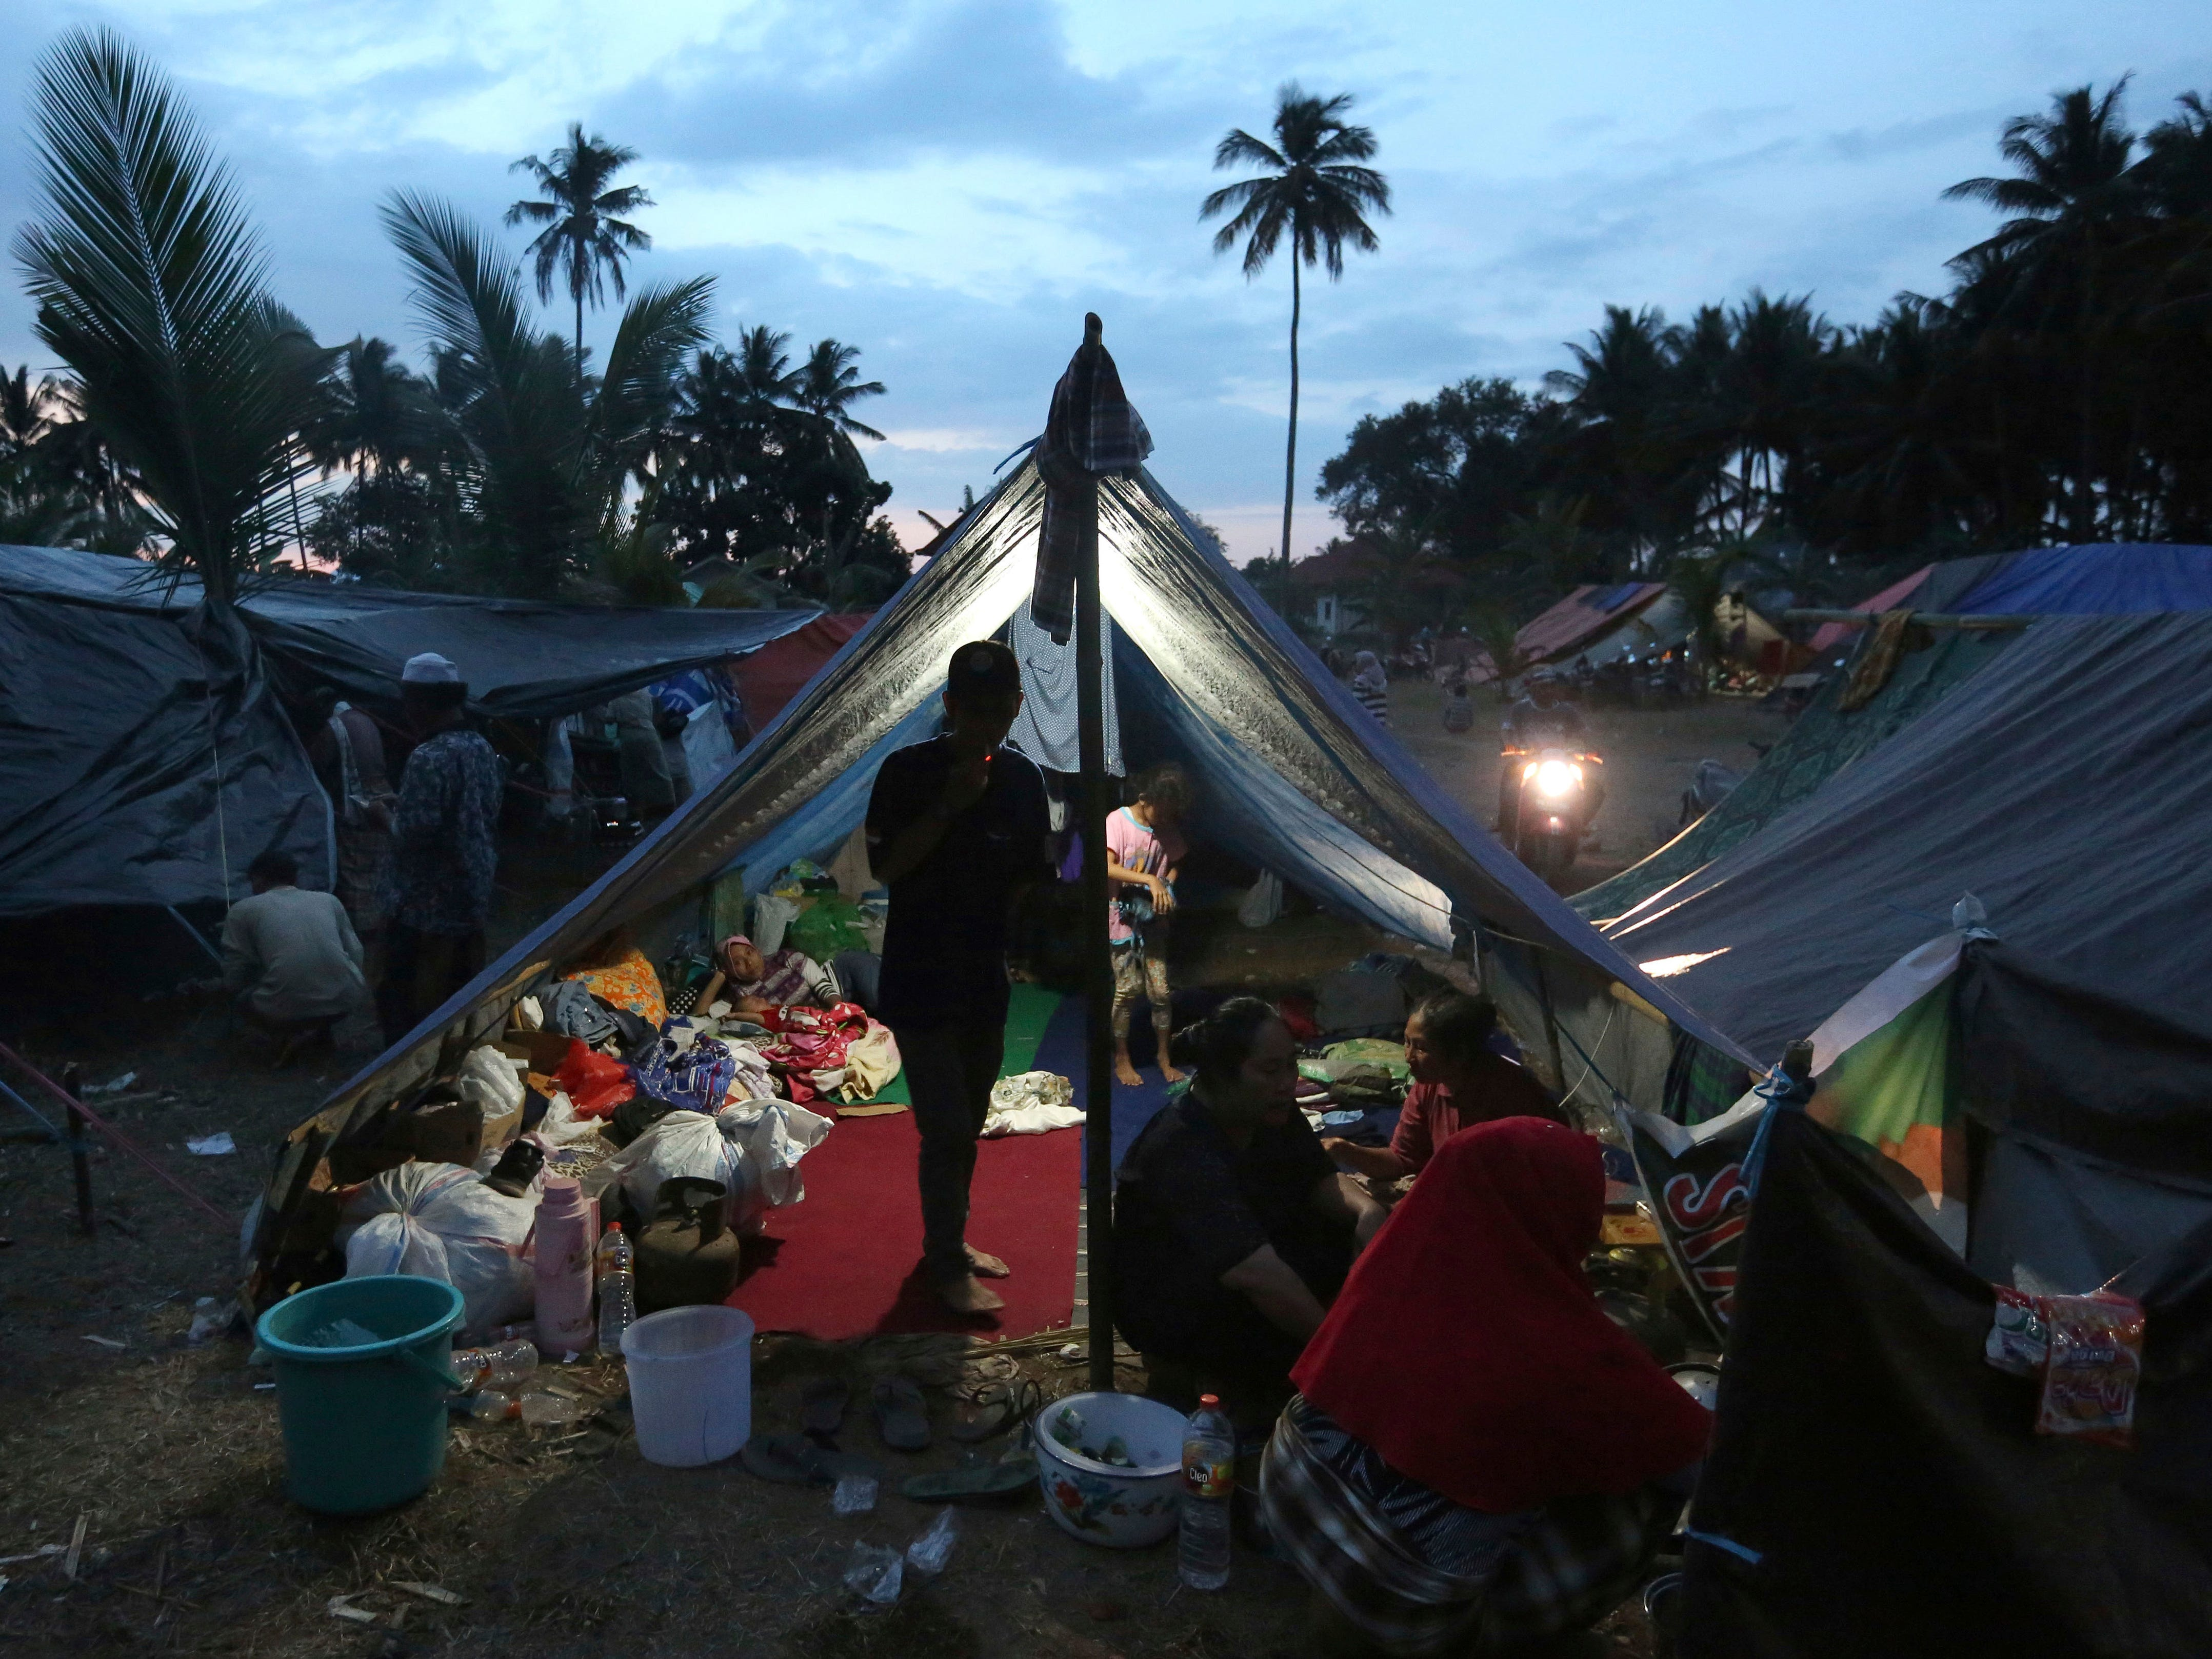 Villagers gather at a temporary shelter after fleeing their damaged village affected by Sunday's earthquake in North Lombok, Indonesia on Weds, Aug. 8, 2018. Aid has begun reaching isolated areas of the Indonesian island struggling after an earthquake killed over 100 people as rescuers intensify efforts to find those buried in the rubble.